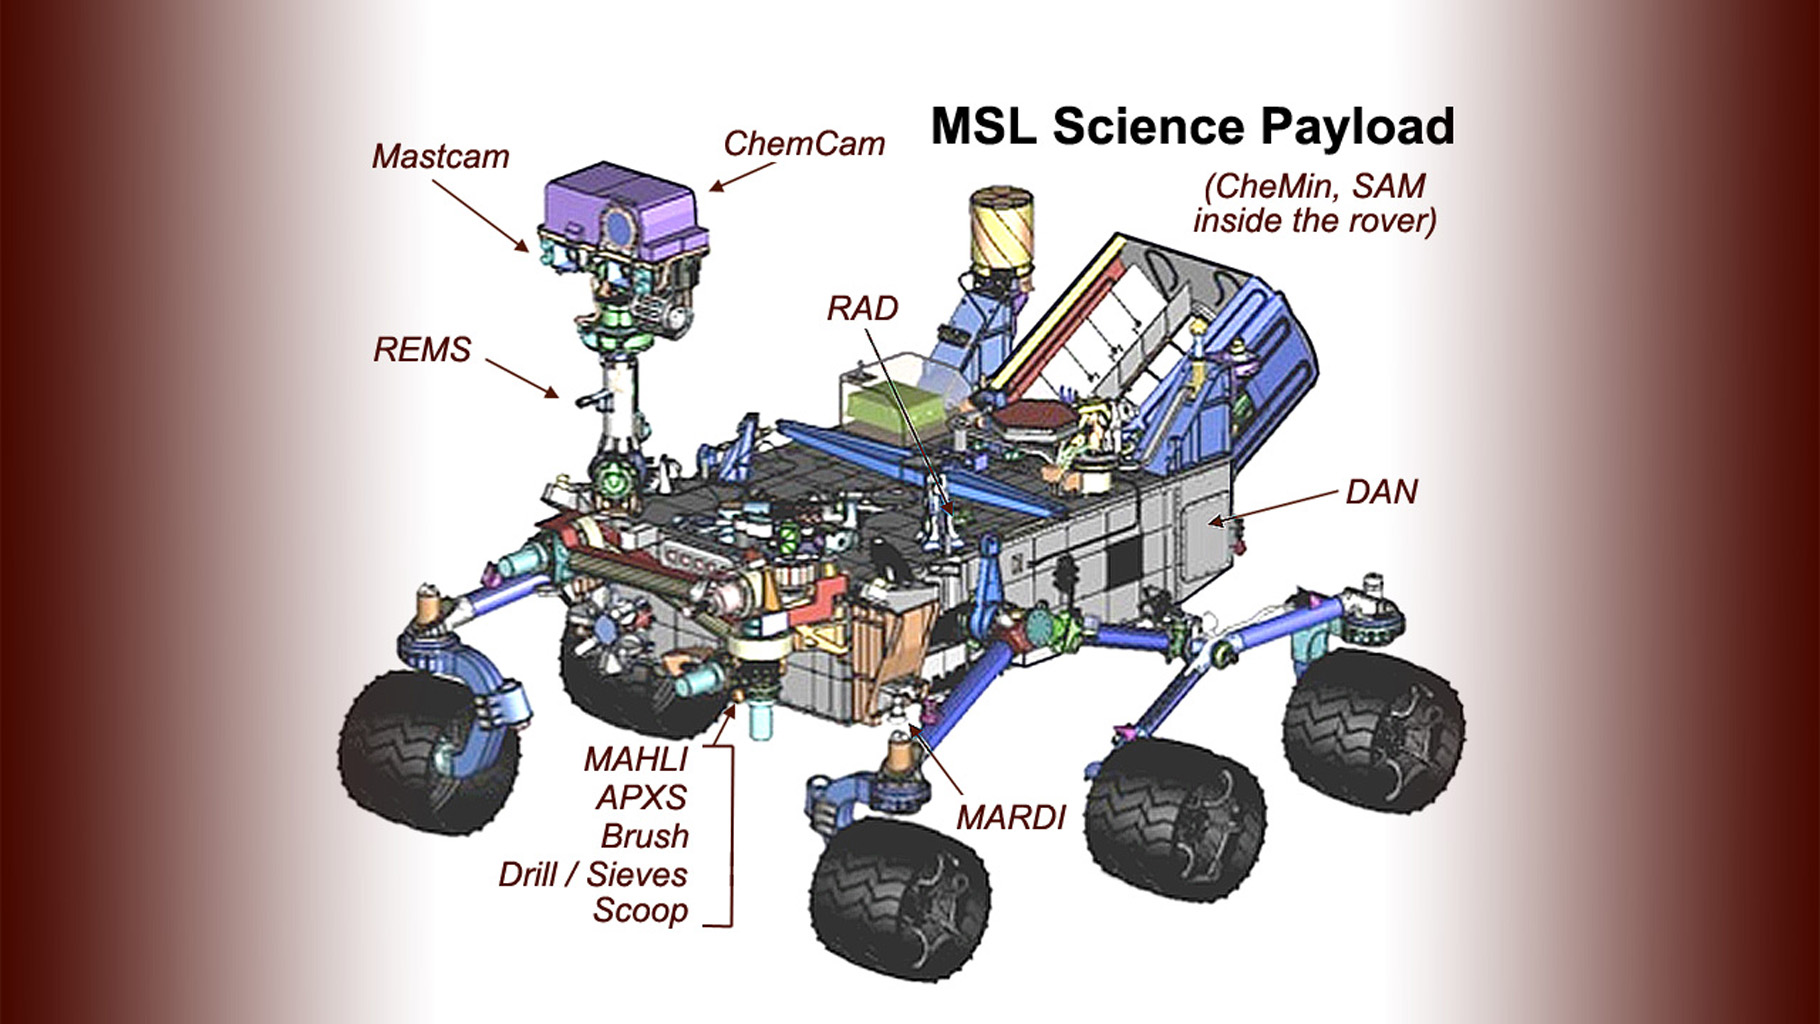 curiosity rover diagram large intestine anatomy labeled space images diverse science payload on mars